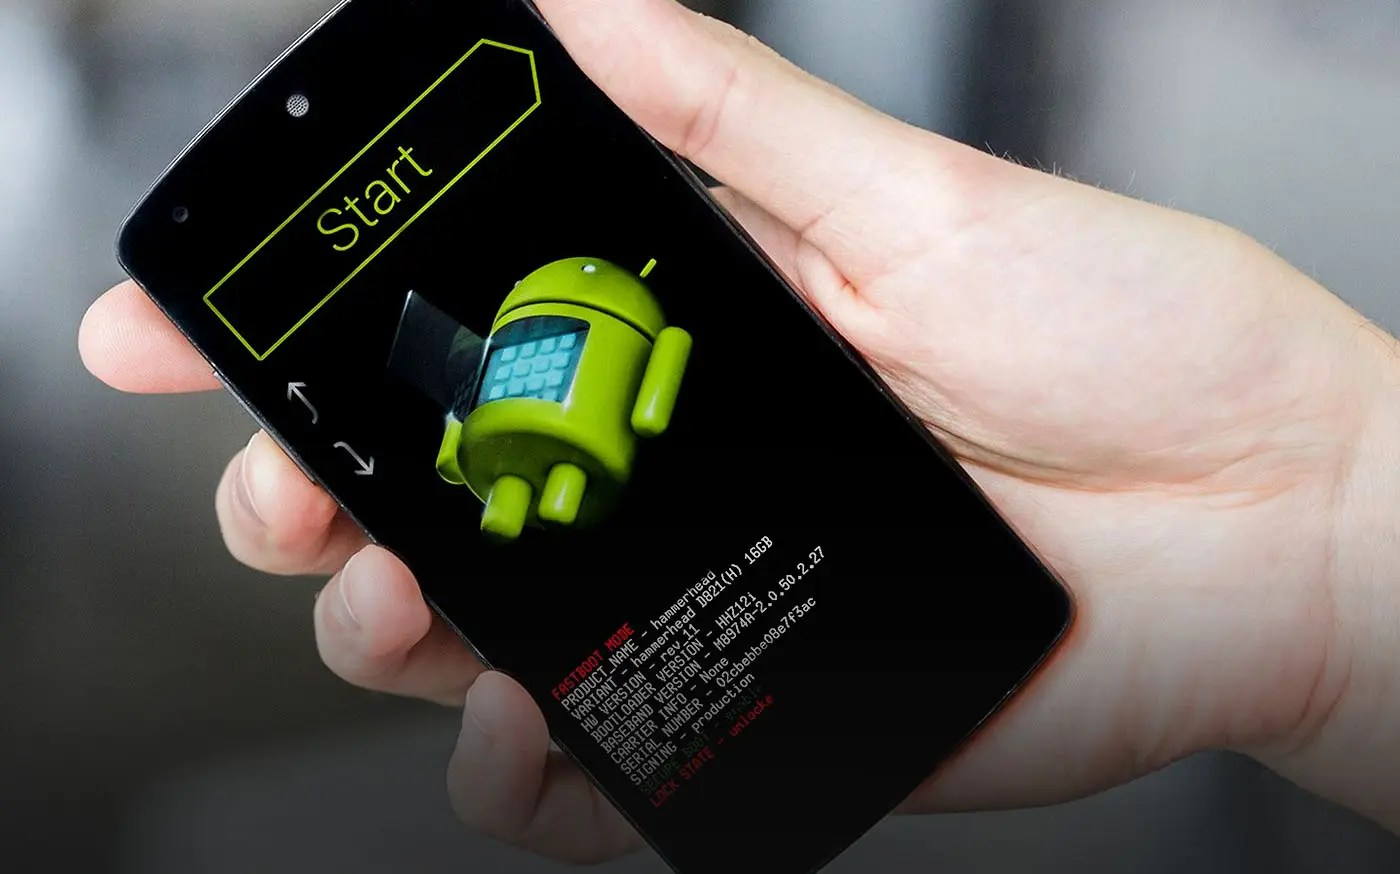 Cara Upgrade Android melalui Root